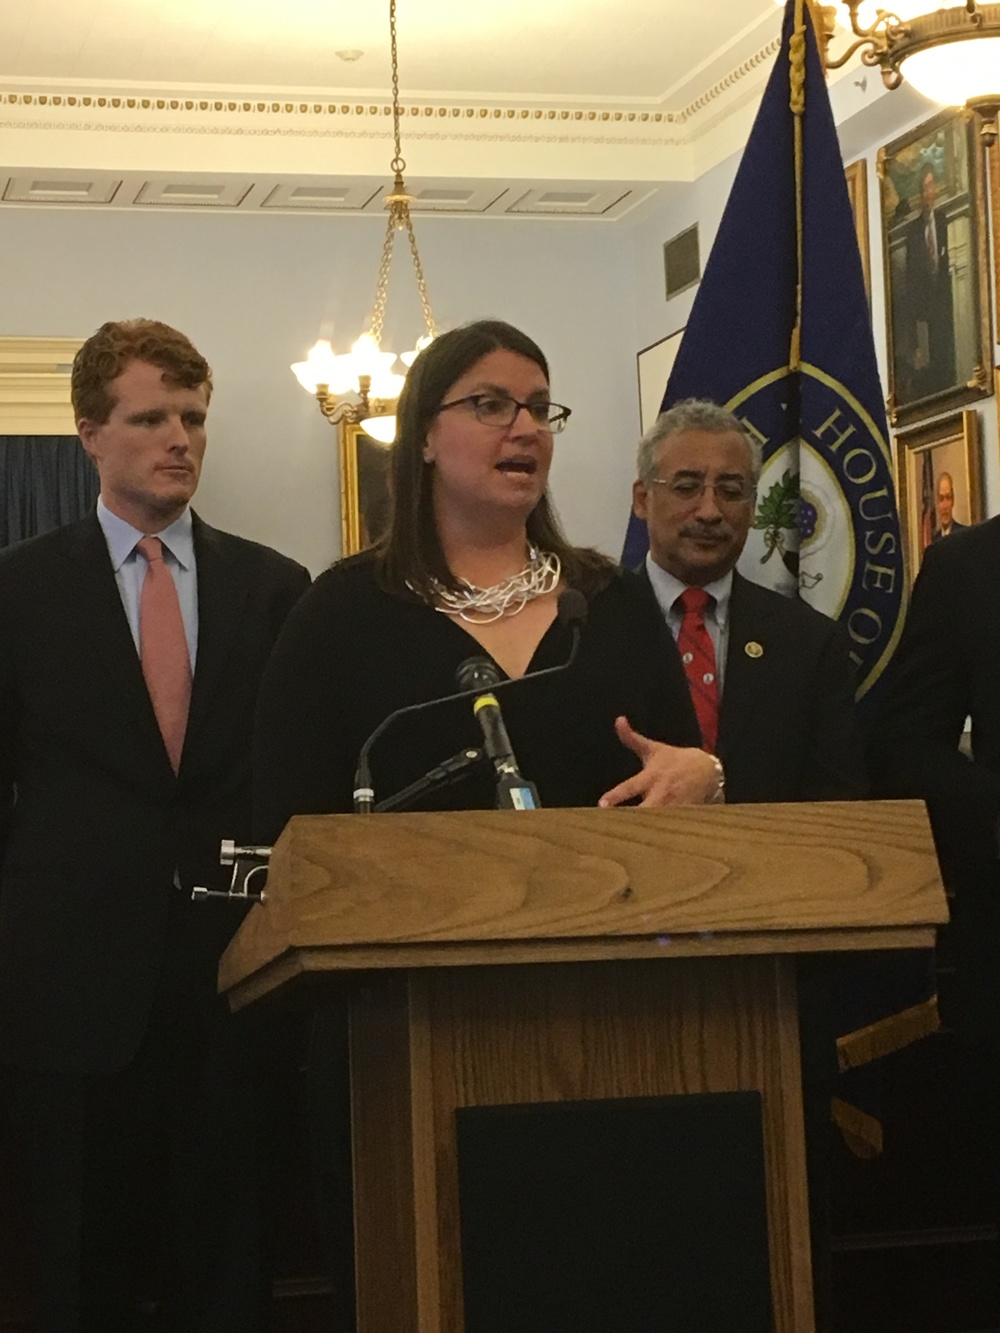 AU Legislative Director Maggie Garrett speaks at a press conference unveiling the Do No Harm Act flanked by Reps. Kennedy (l) and Scott.